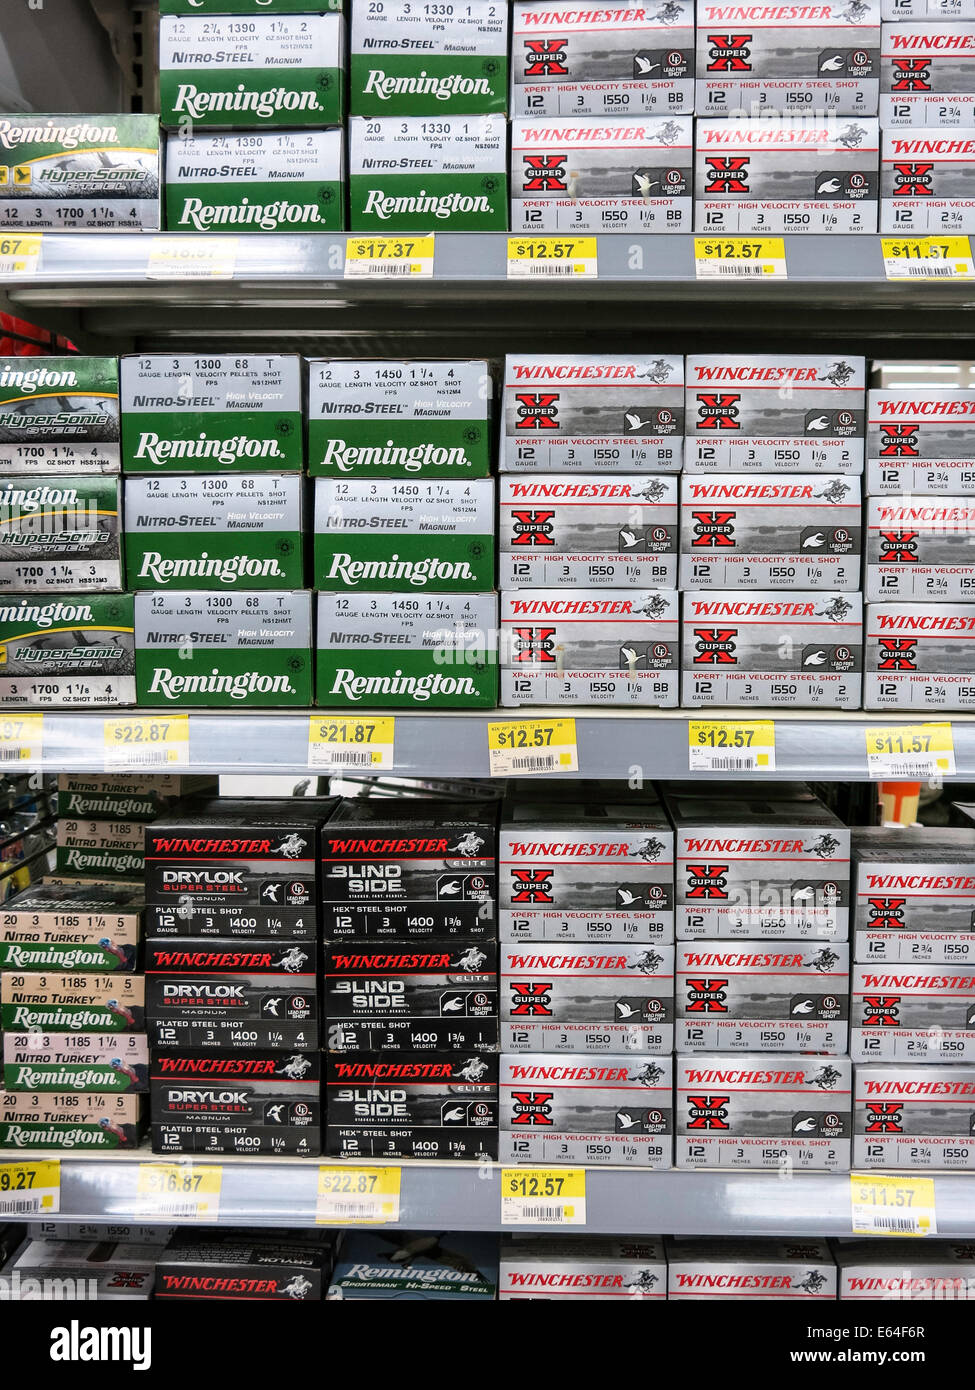 Winchester and Remington 12 Gauge Shotgun Shell Boxes, Walmart Stock